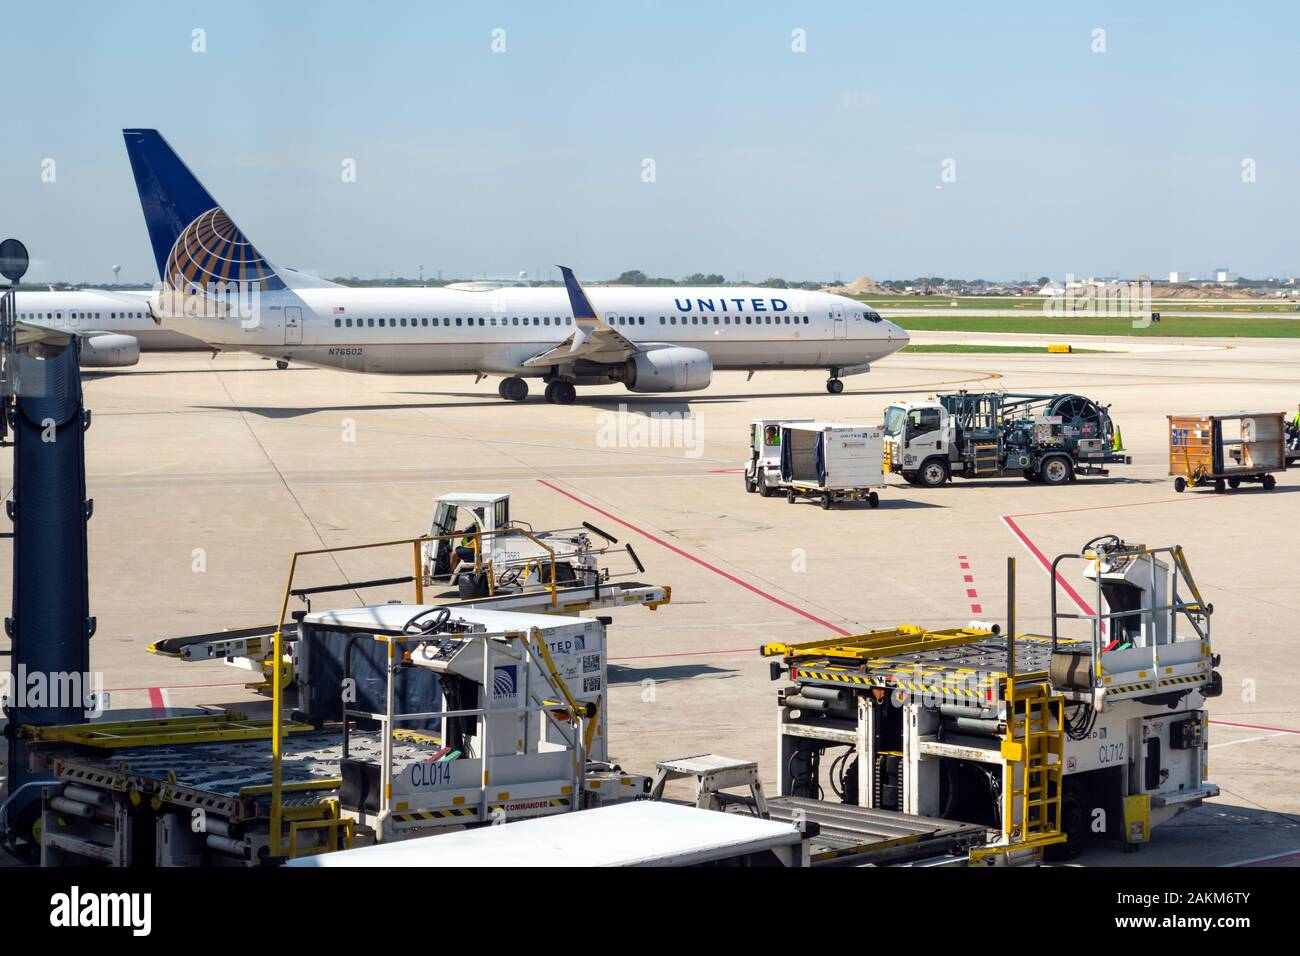 A united Airlines airplane prepares to take off from the tarmac at the Chicago O'Hare Airport as mechanical trucks fill the runway on a sunny day Stock Photo